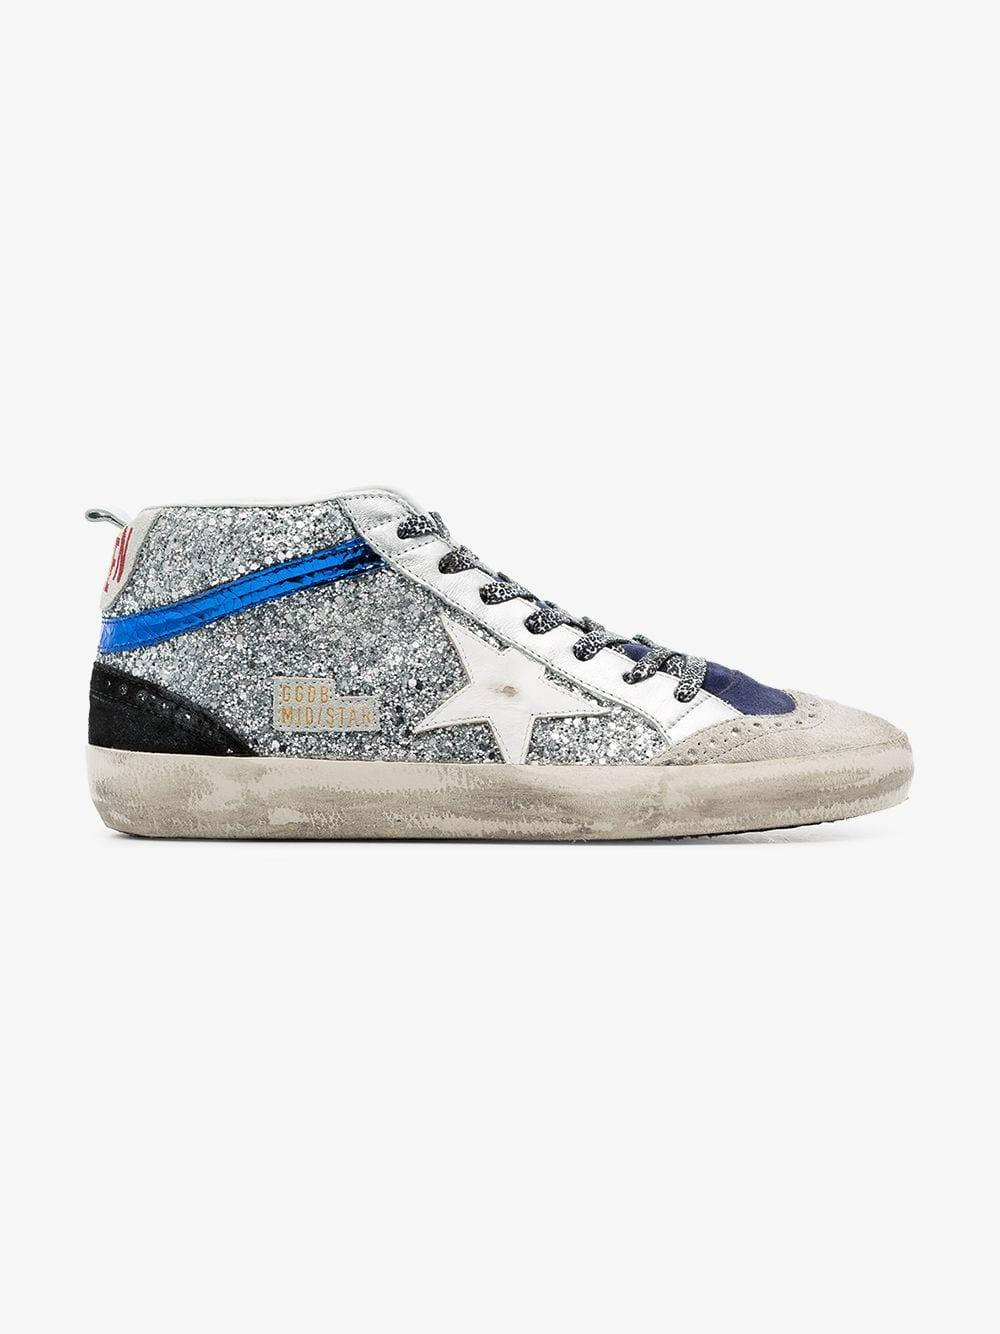 5902aea603e6 Golden Goose Deluxe Brand - Metallic Mid Star Glitter Embellished Hi-top Leather  Sneakers -. View fullscreen